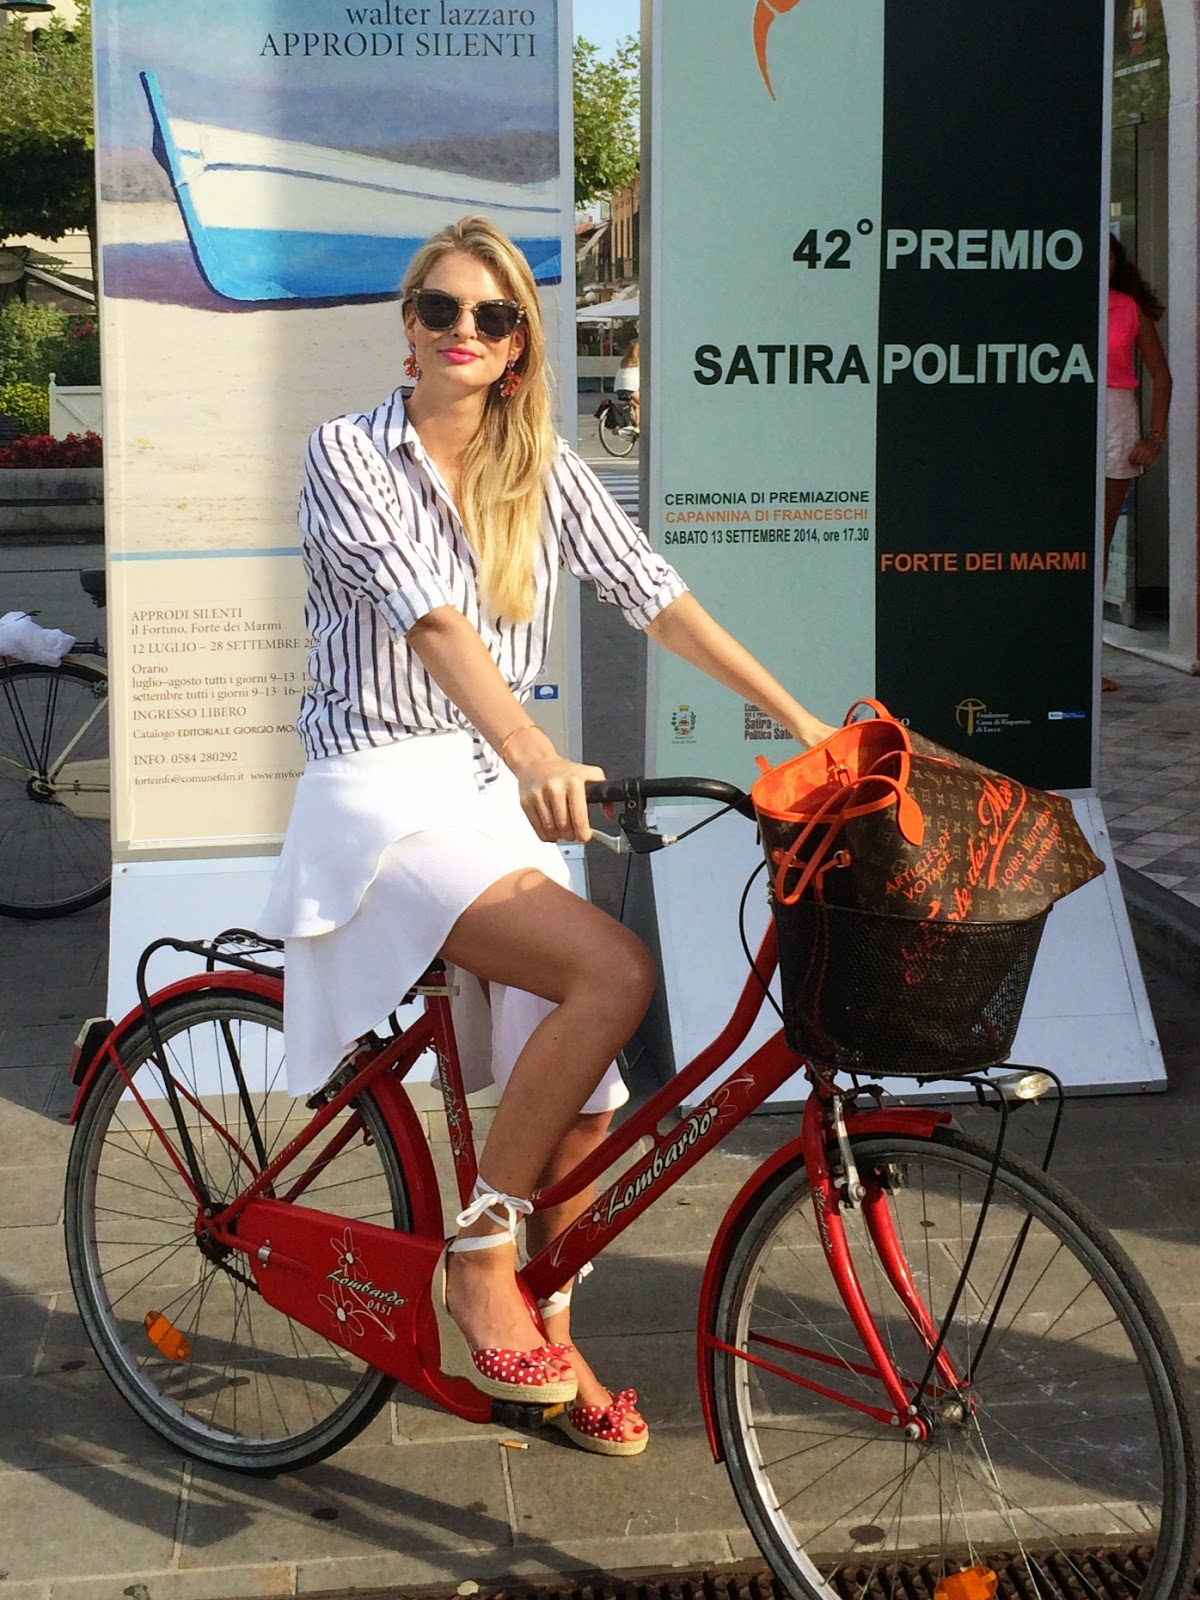 miu miu sunglasses, bicycle, tommy hilfiger shoes, espadrilles, white skirt, hm trend skirt, striped shirt, louis vuitton, louis vuitton neverful